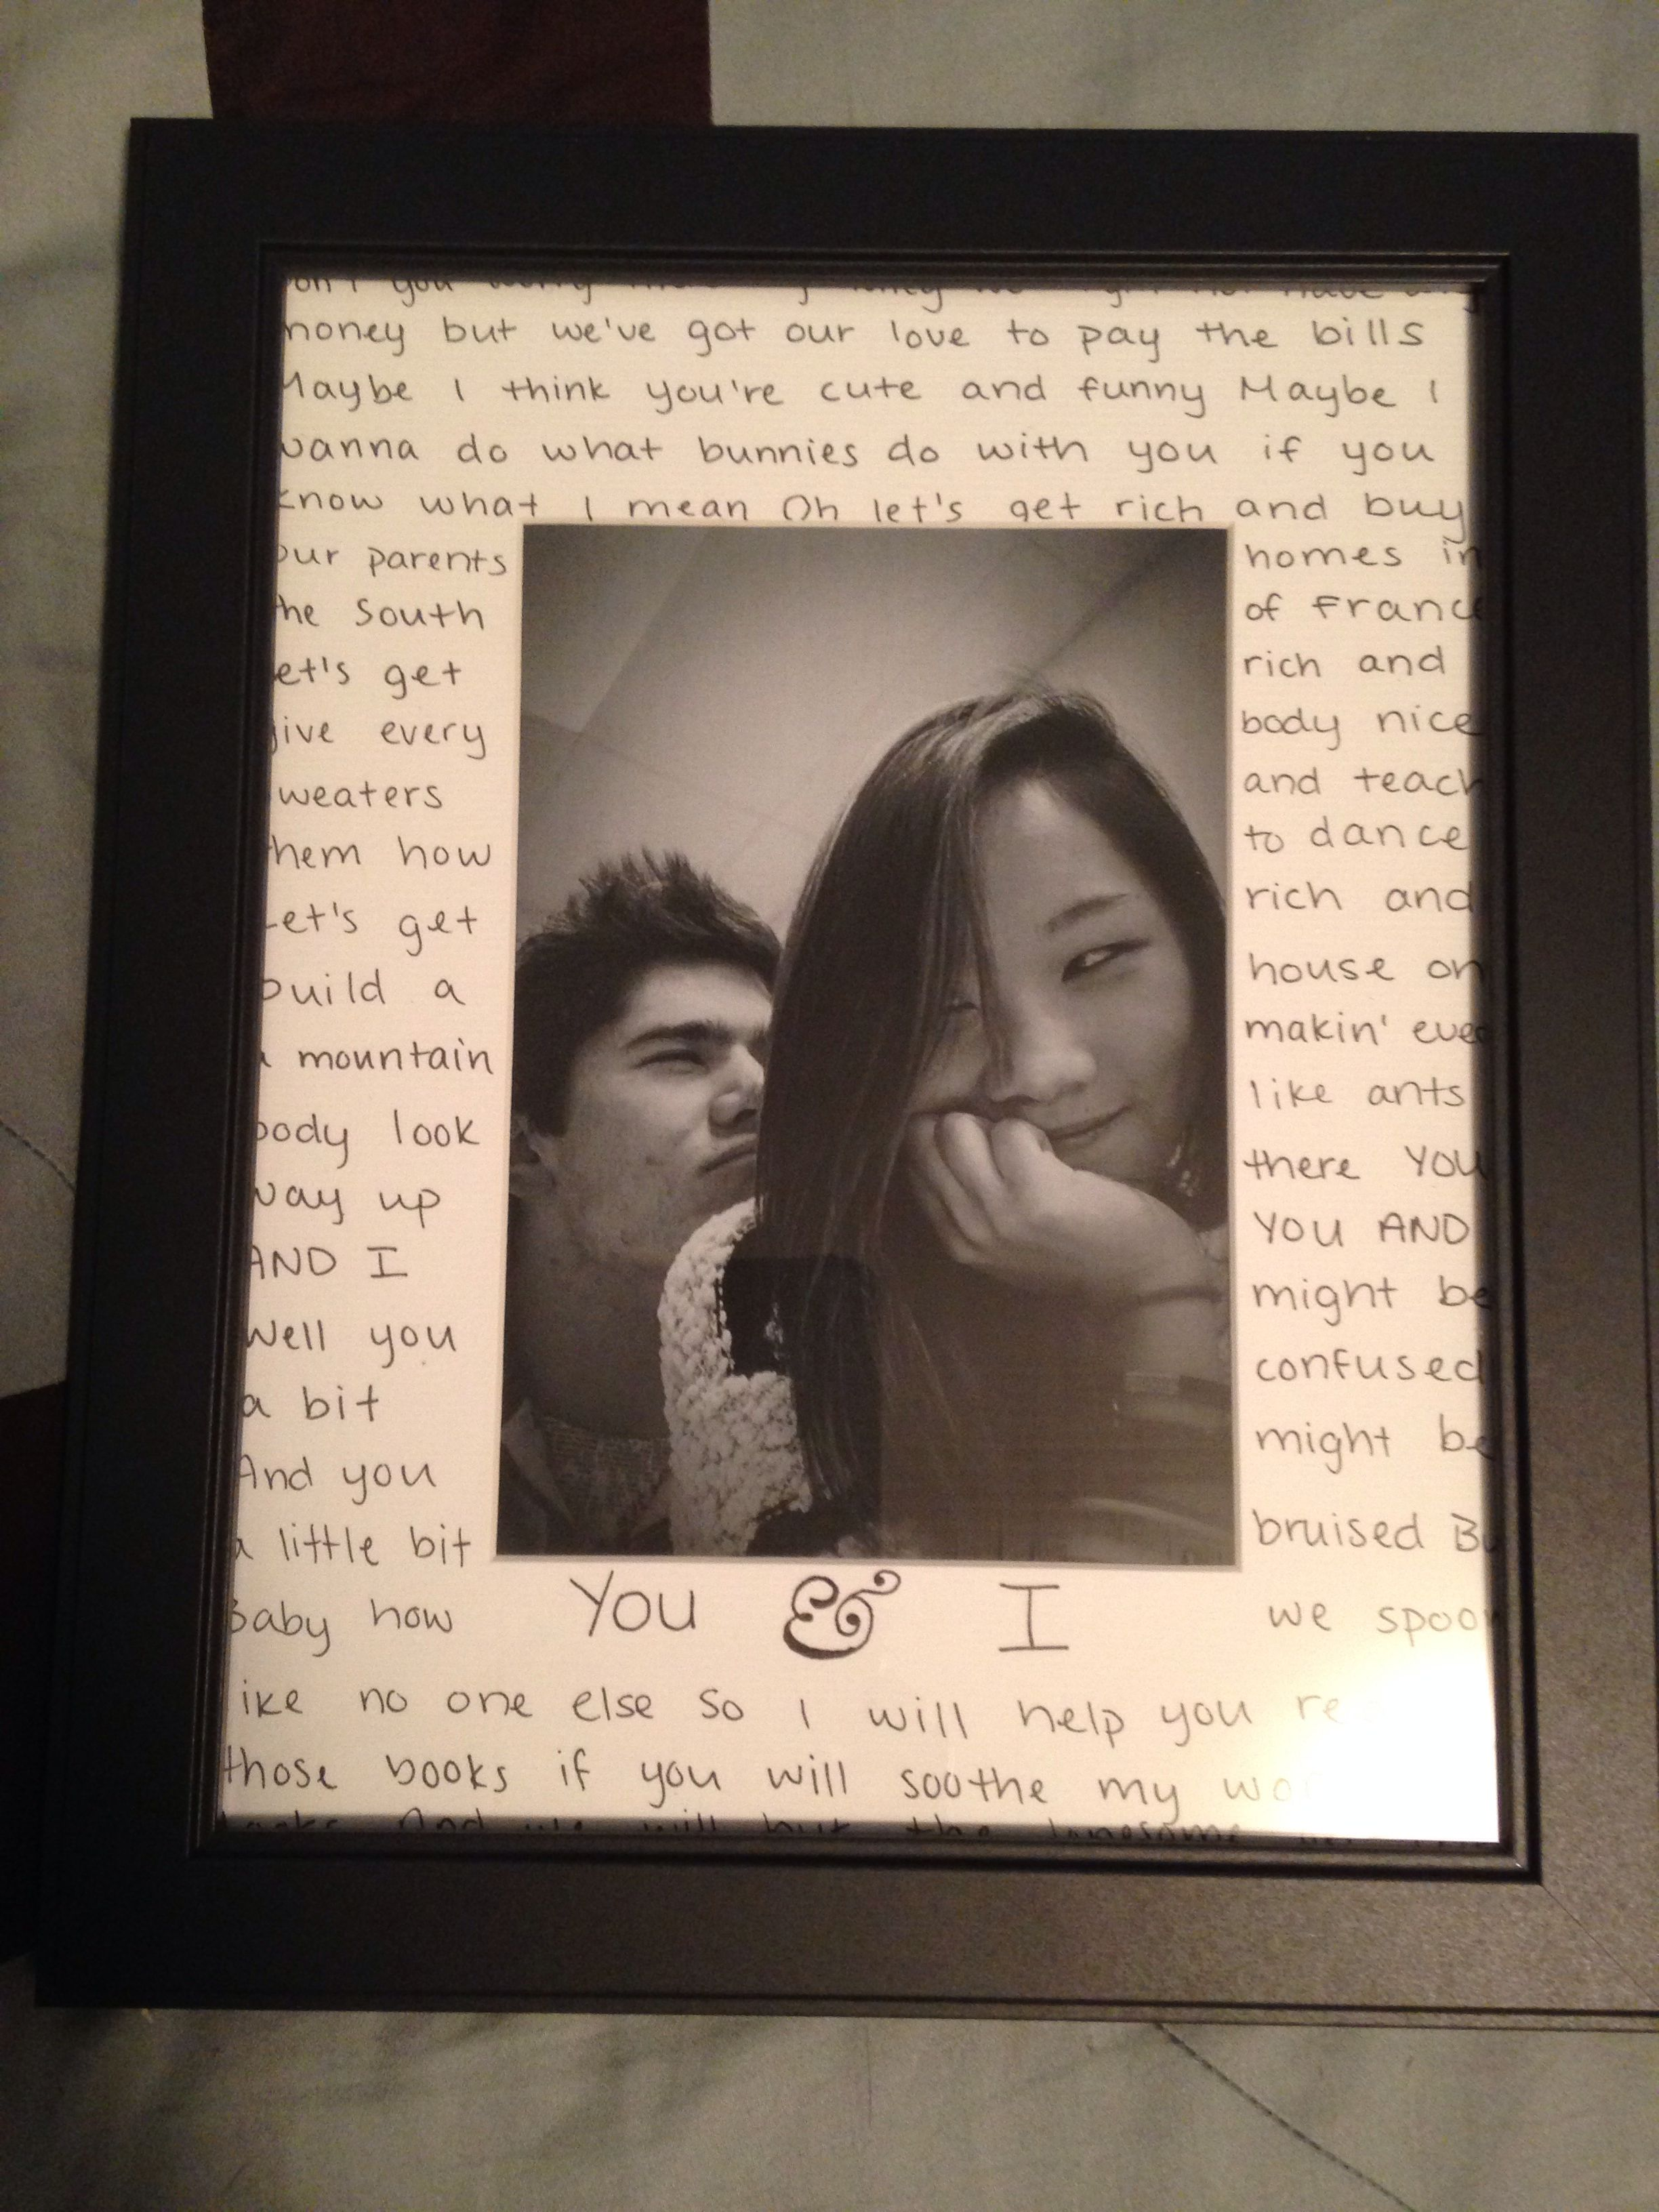 For My Boyfriend On His Birthday It S Just A Nice Simple Frame